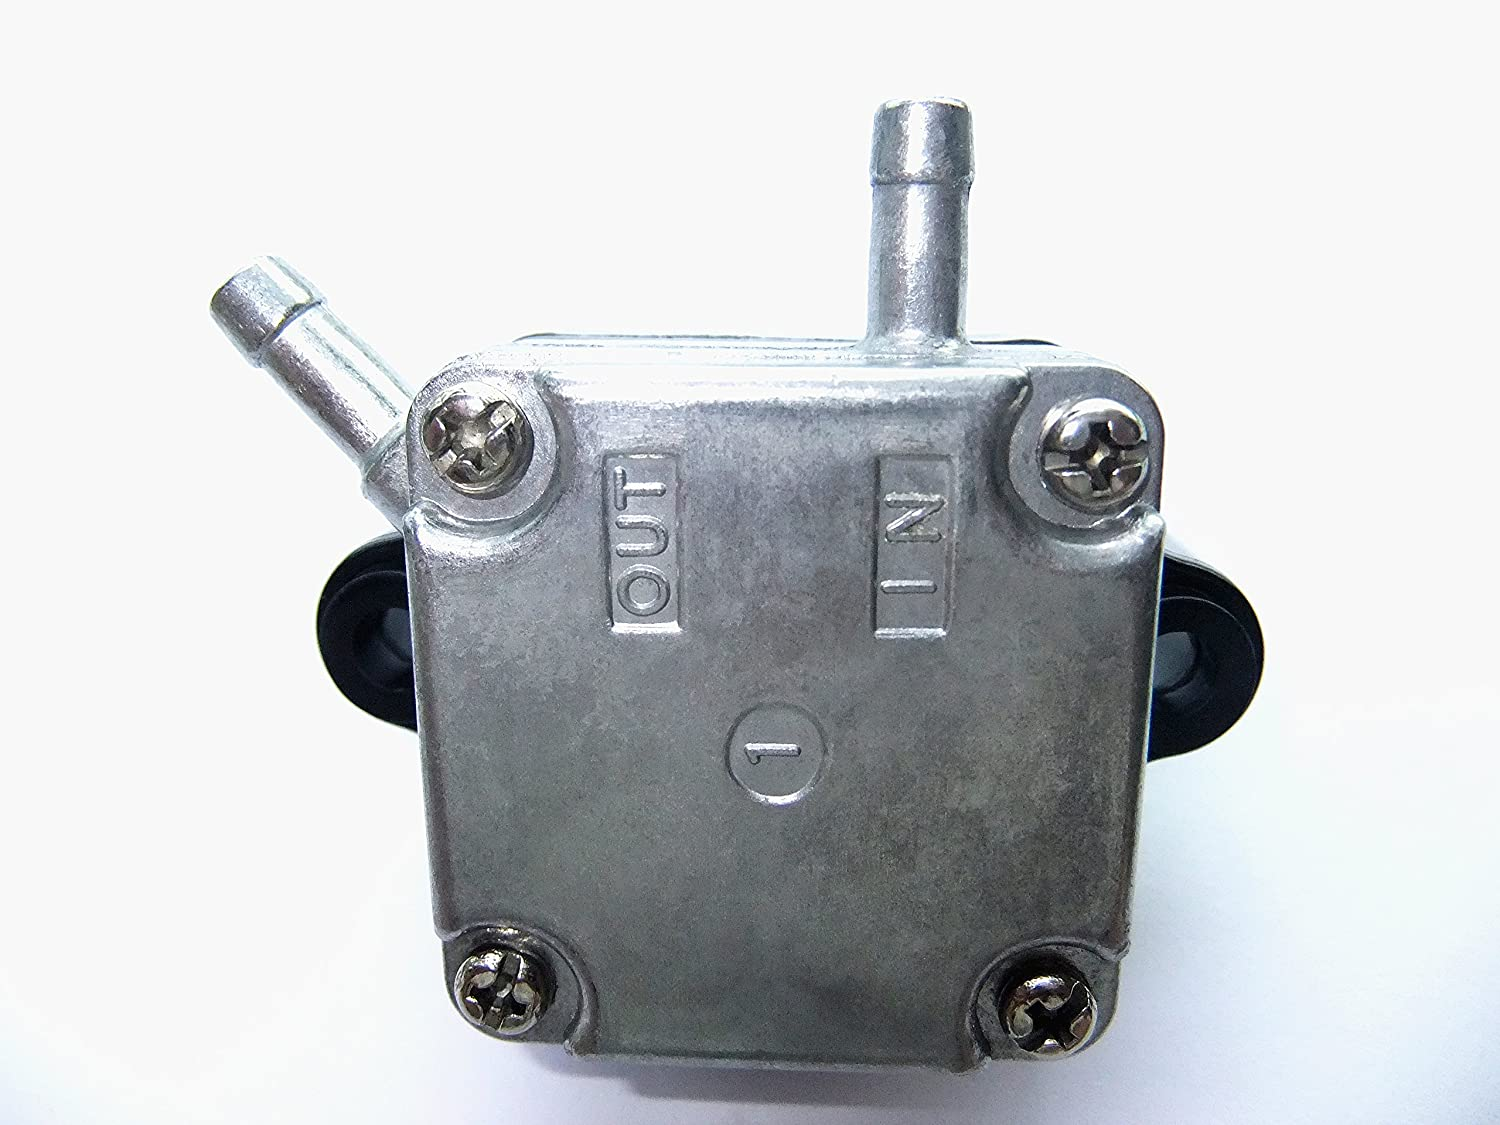 SouthMarine Boat Motor Fuel Pump 66M-24410-10-00 66M-24410-11-00 for Yamaha 4-Stroke 9.9HP 15HP F15 F9.9 Outboard Motor